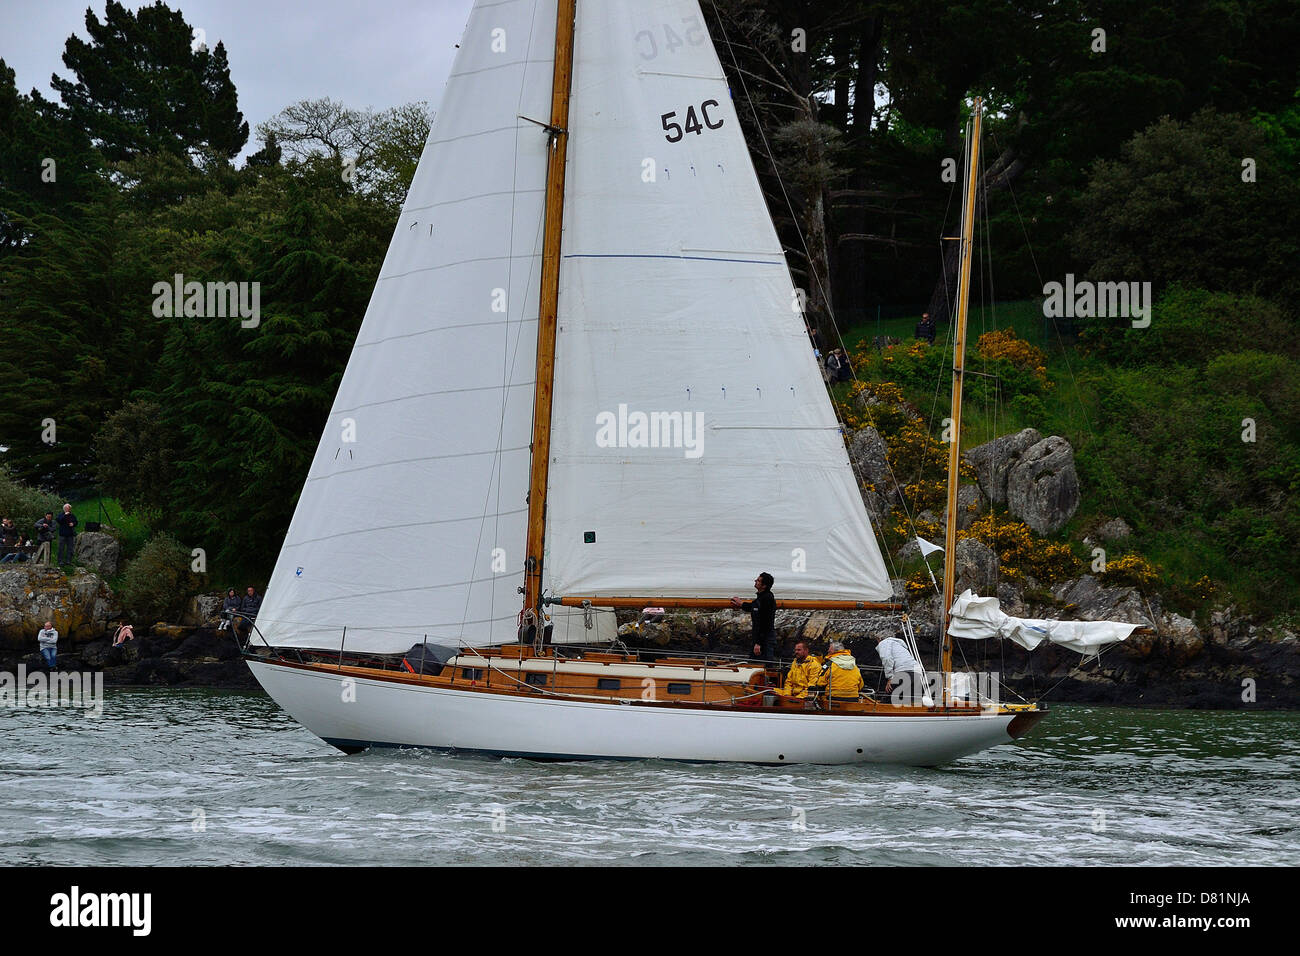 Ketch Rig Stock Photos & Ketch Rig Stock Images - Alamy